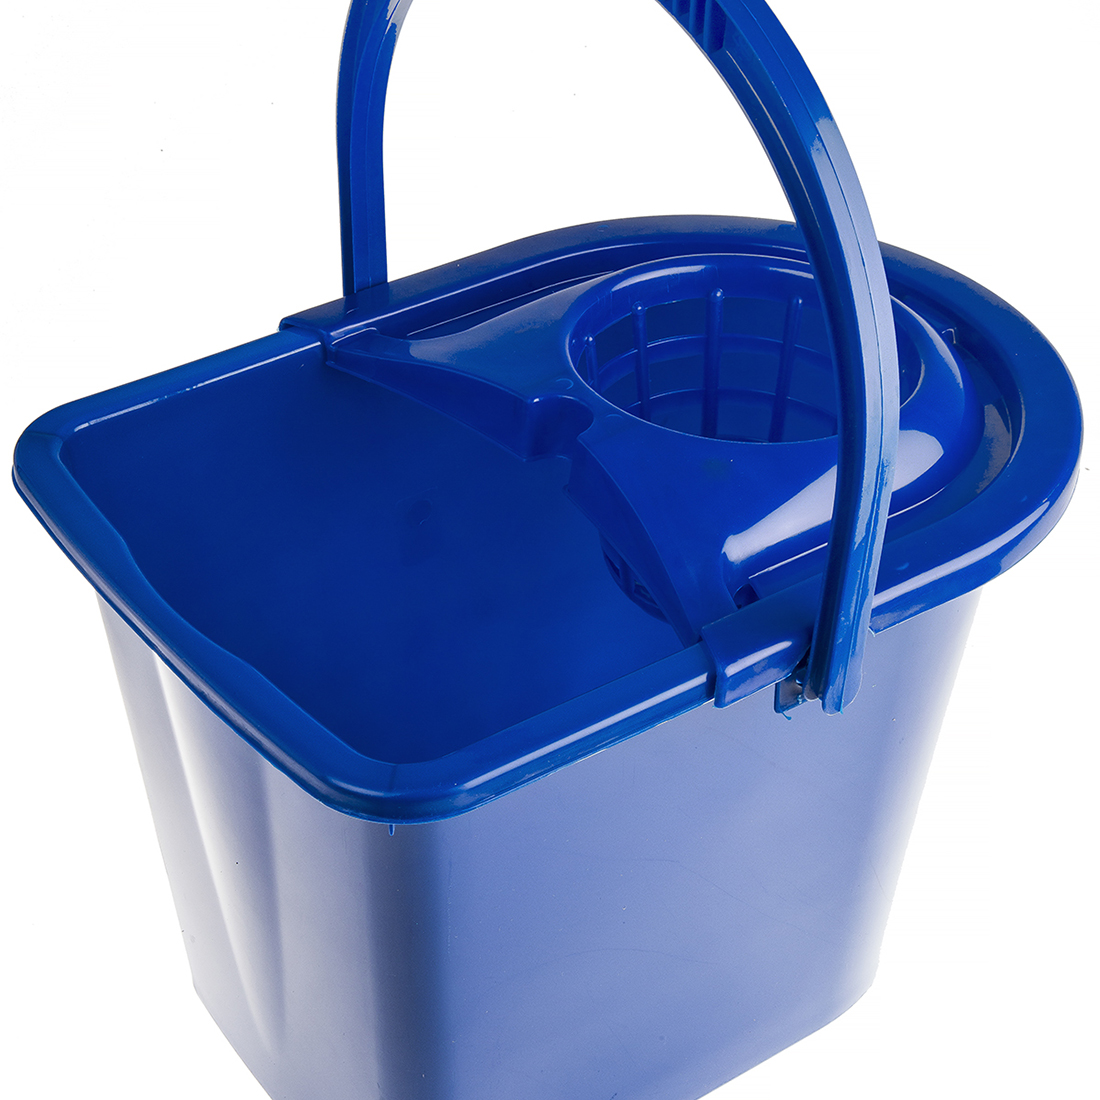 12L Plastic Blue Mop Bucket With Handle